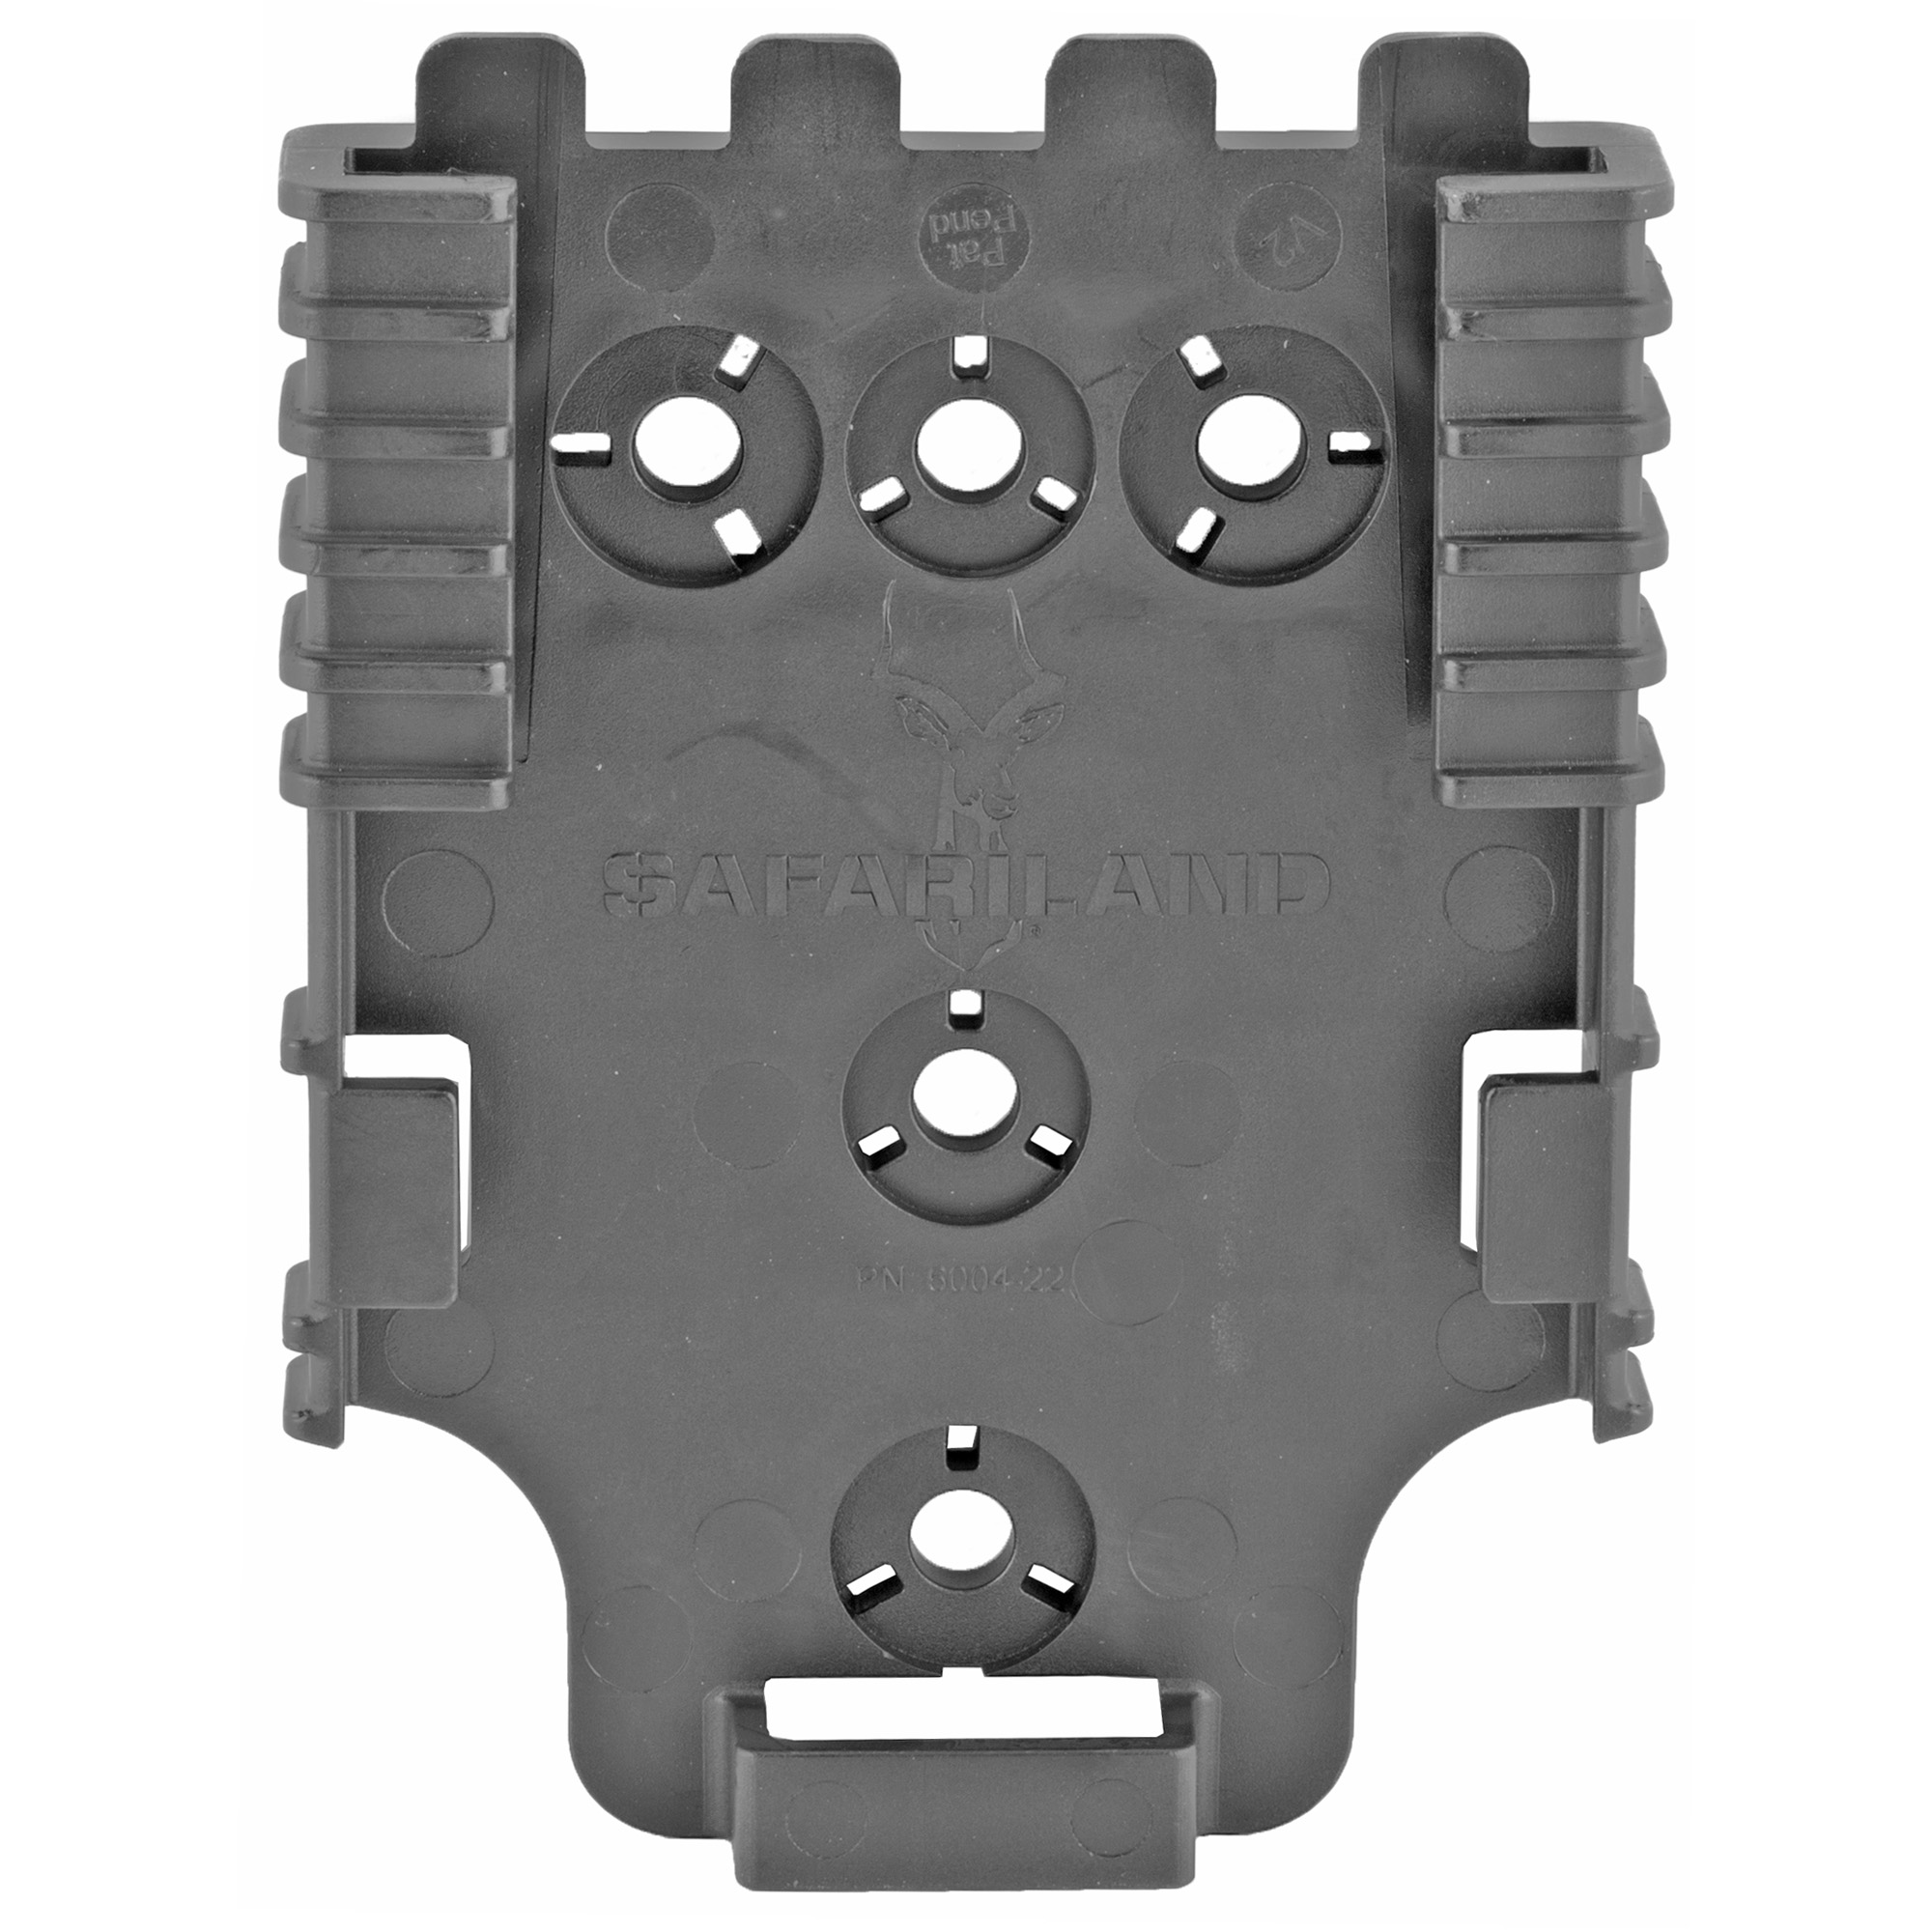 "The QLS 22 Receiver Plate is designed to accept the QLS 19 Locking Fork. Constructed of injection molded nylon"" it screws onto mounting platforms such as a tactical leg shroud"" belt loop"" wall or any other stable location. The system (fork and plate) works with any Safariland(R) 2-hole pattern pouch or 3-hole pattern holster. Rearrange gear quickly and easily without the use of tools. The QLS fork and plate combination passes the Level I Retention(TM) pull test."